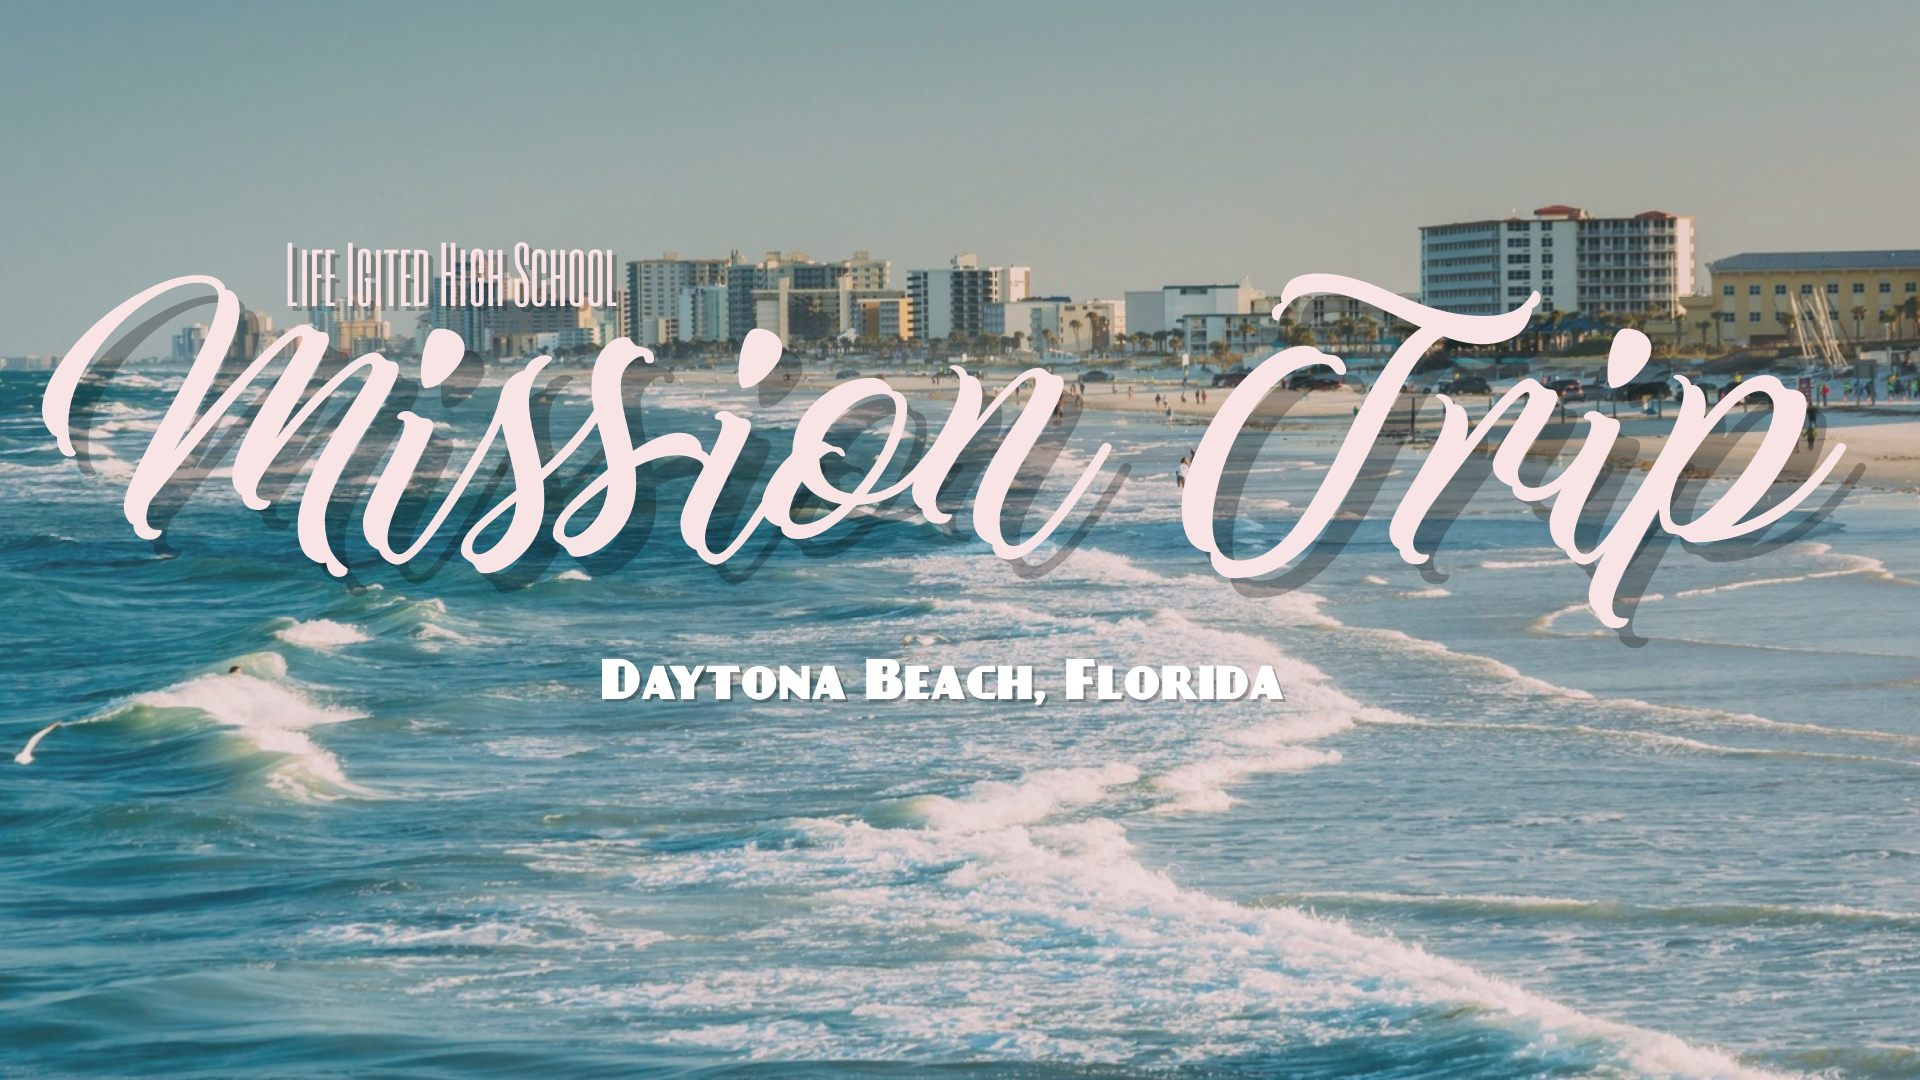 High school   mission trip daytona